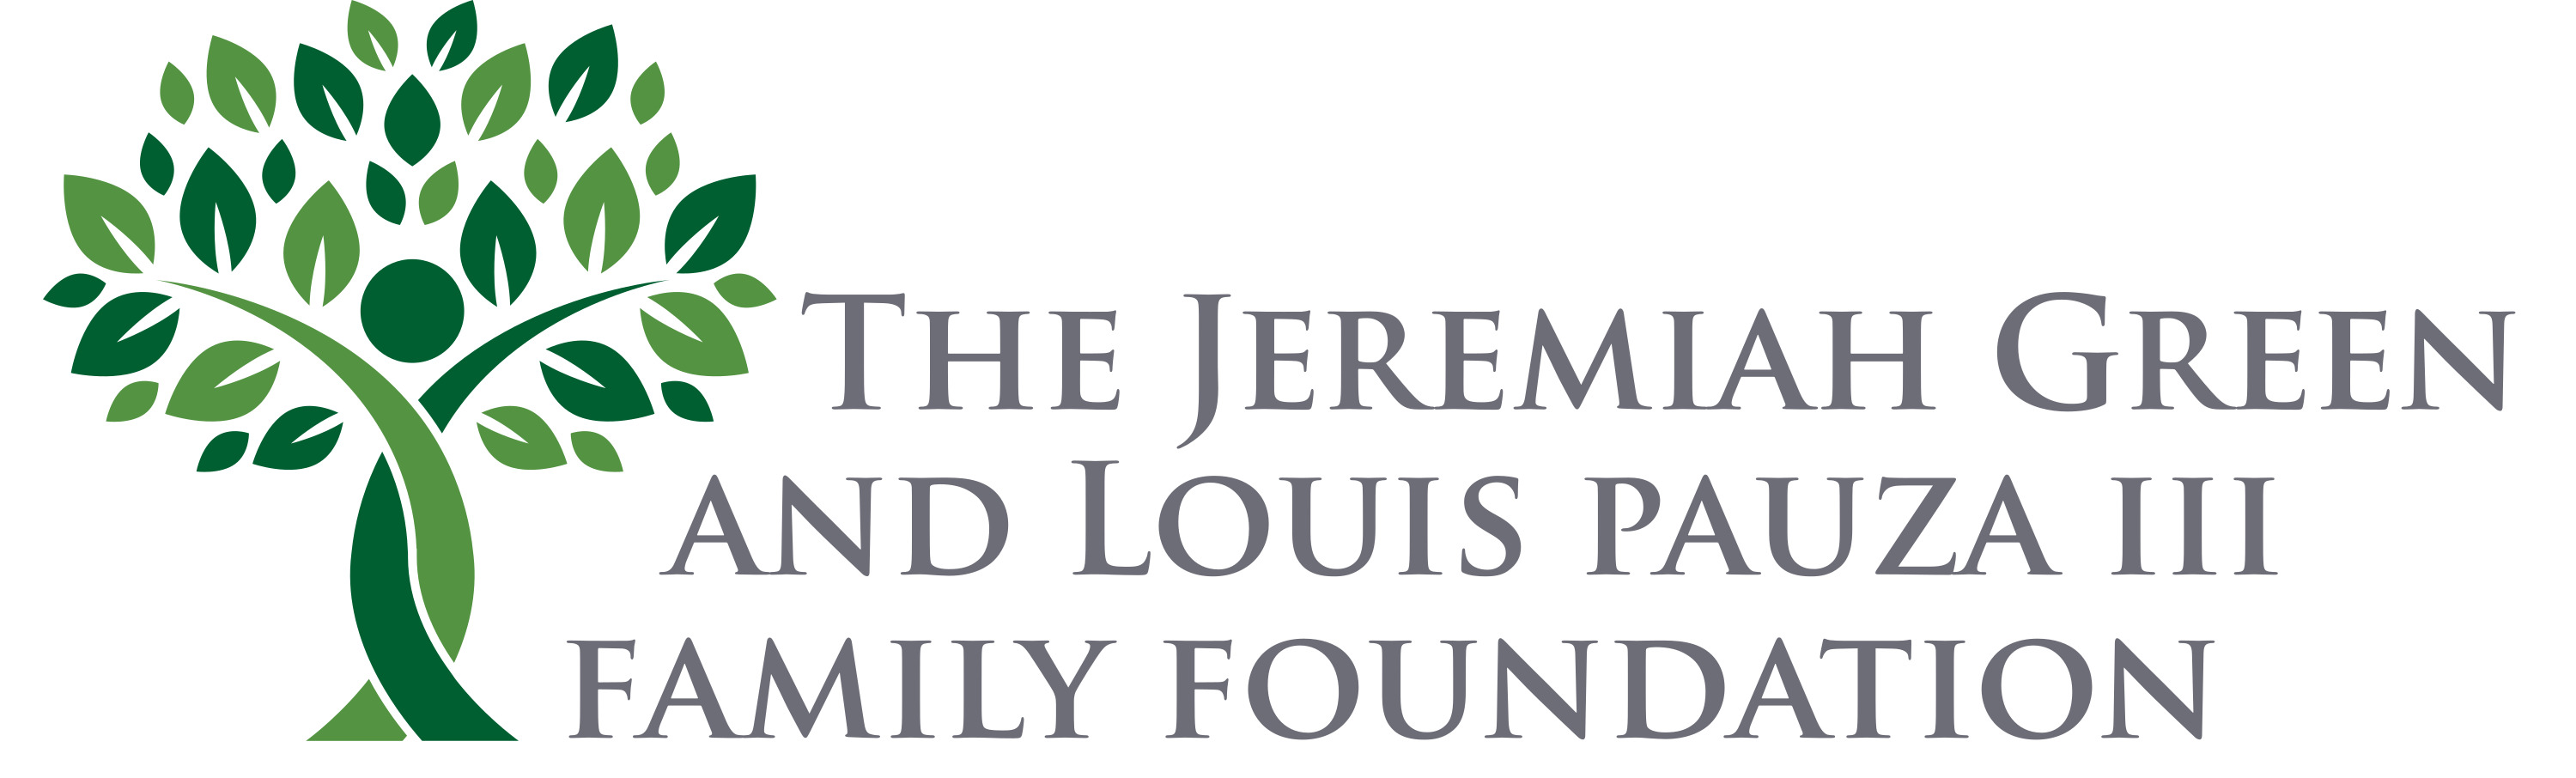 Jeremiah Green Family Foundation